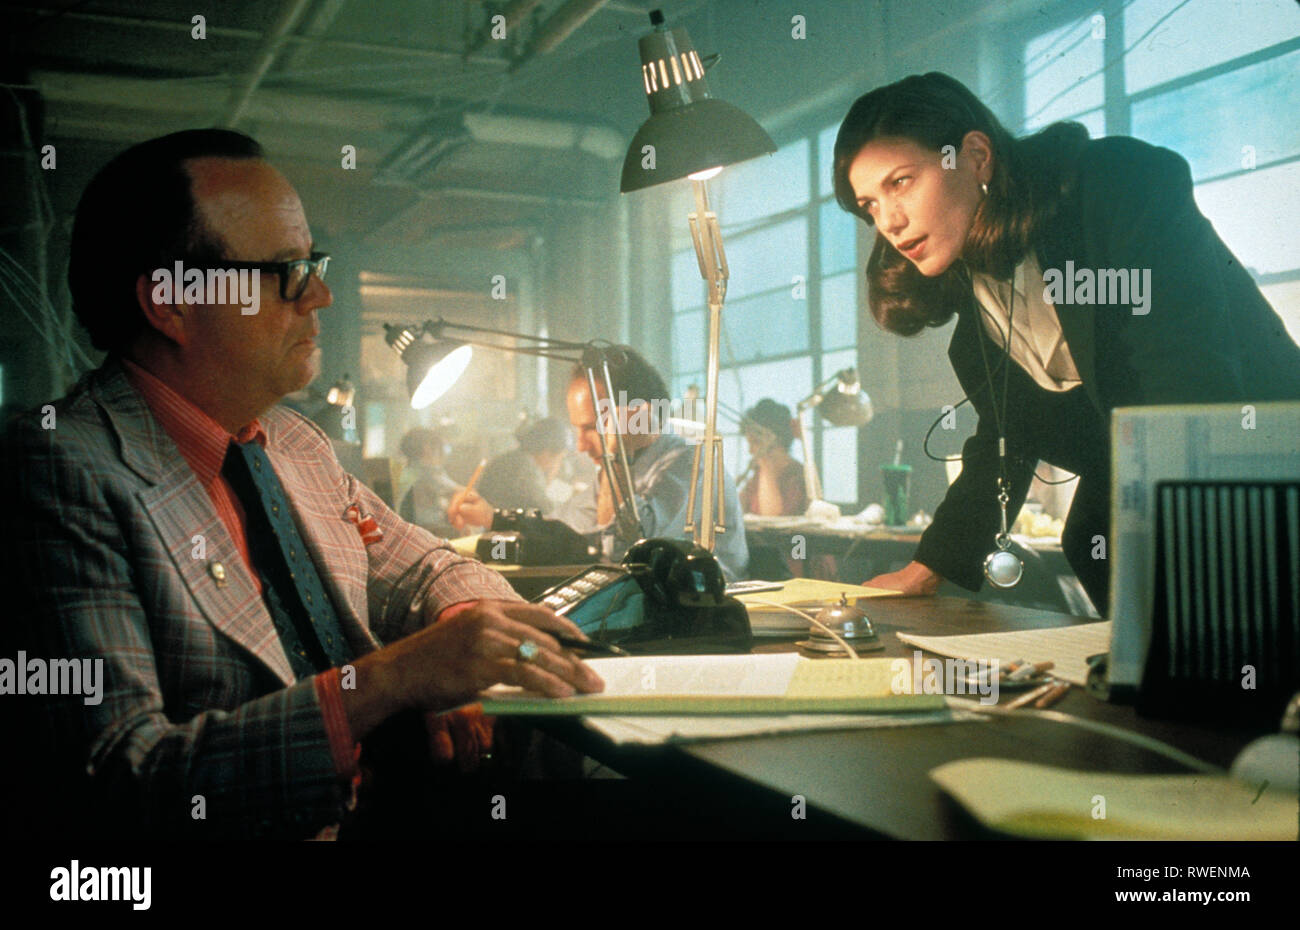 LINDA FIORENTINO, THE LAST SEDUCTION, 1994 - Stock Image